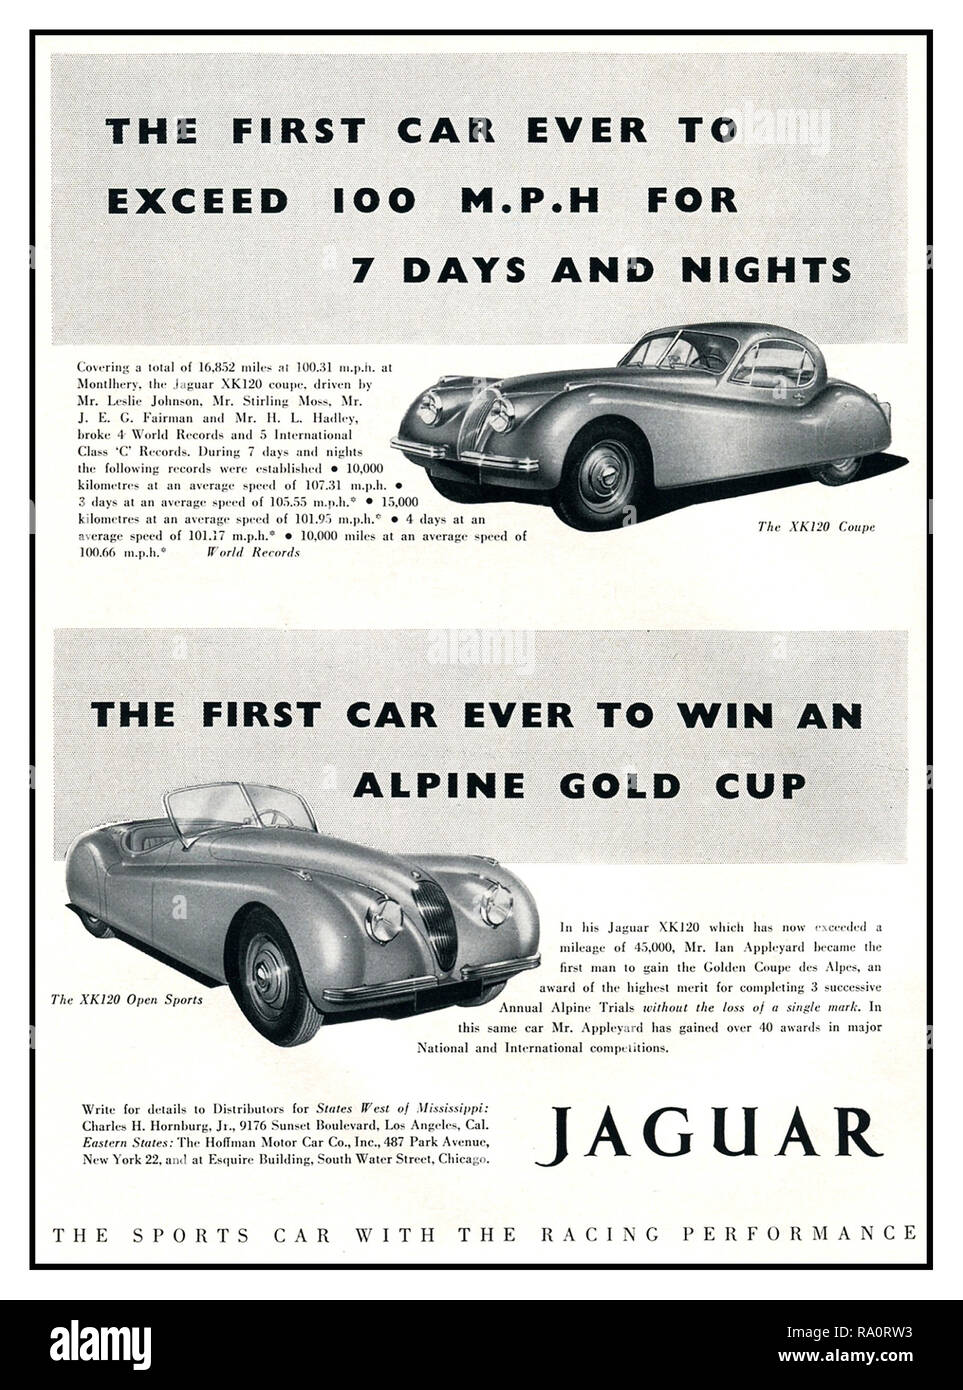 JAGUAR 1950 Vintage advertisement for Jaguar XK120 super sports cars The Coupe and Open Sports 'The fastest production sports car in the world, first to exceed 100mph for 7 days and nights endurance race. The most outstanding car of its generation designed and built in Great Britain UK - Stock Image